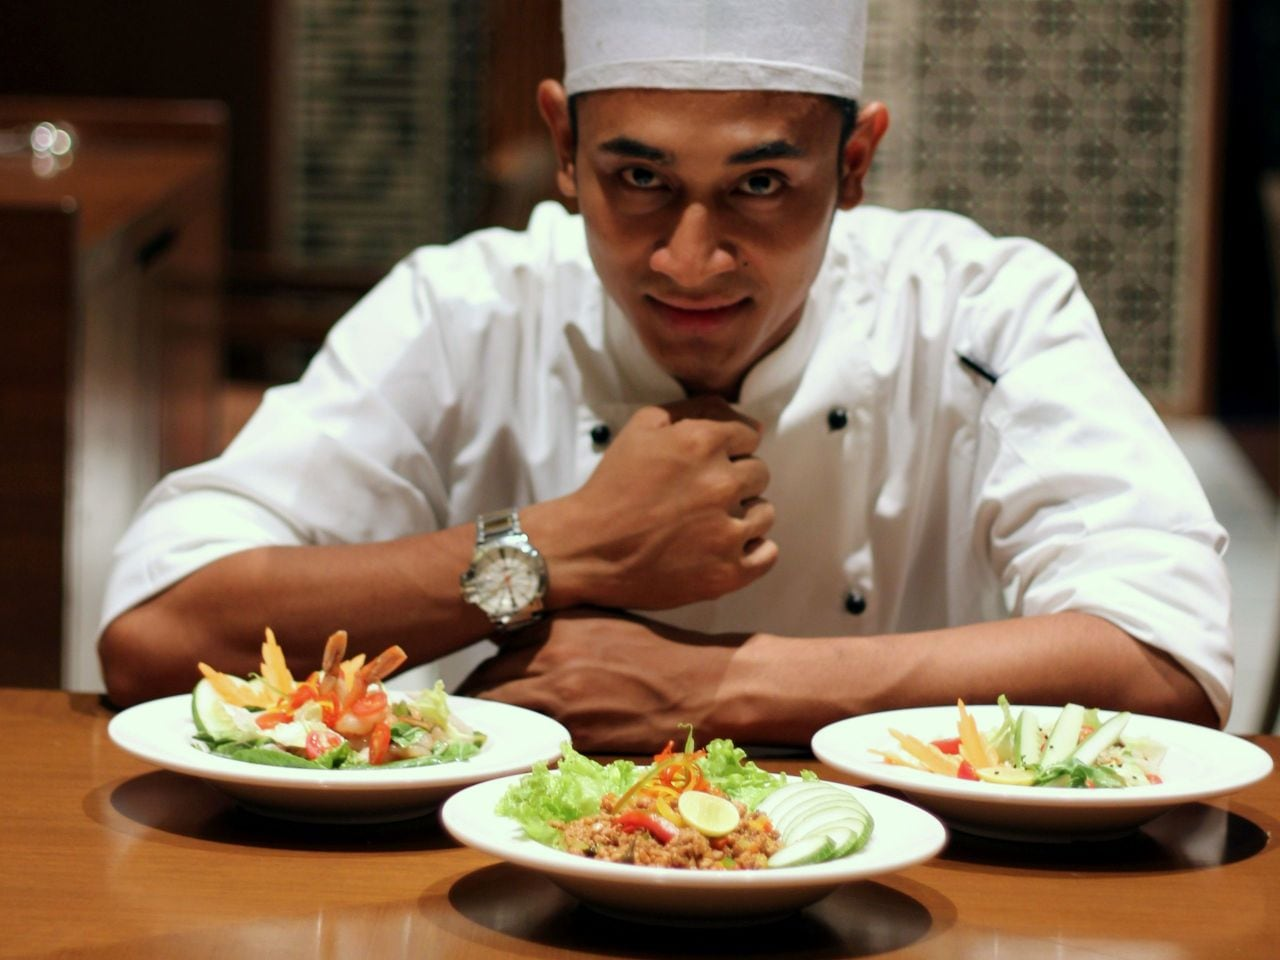 Chef Prakash at Table